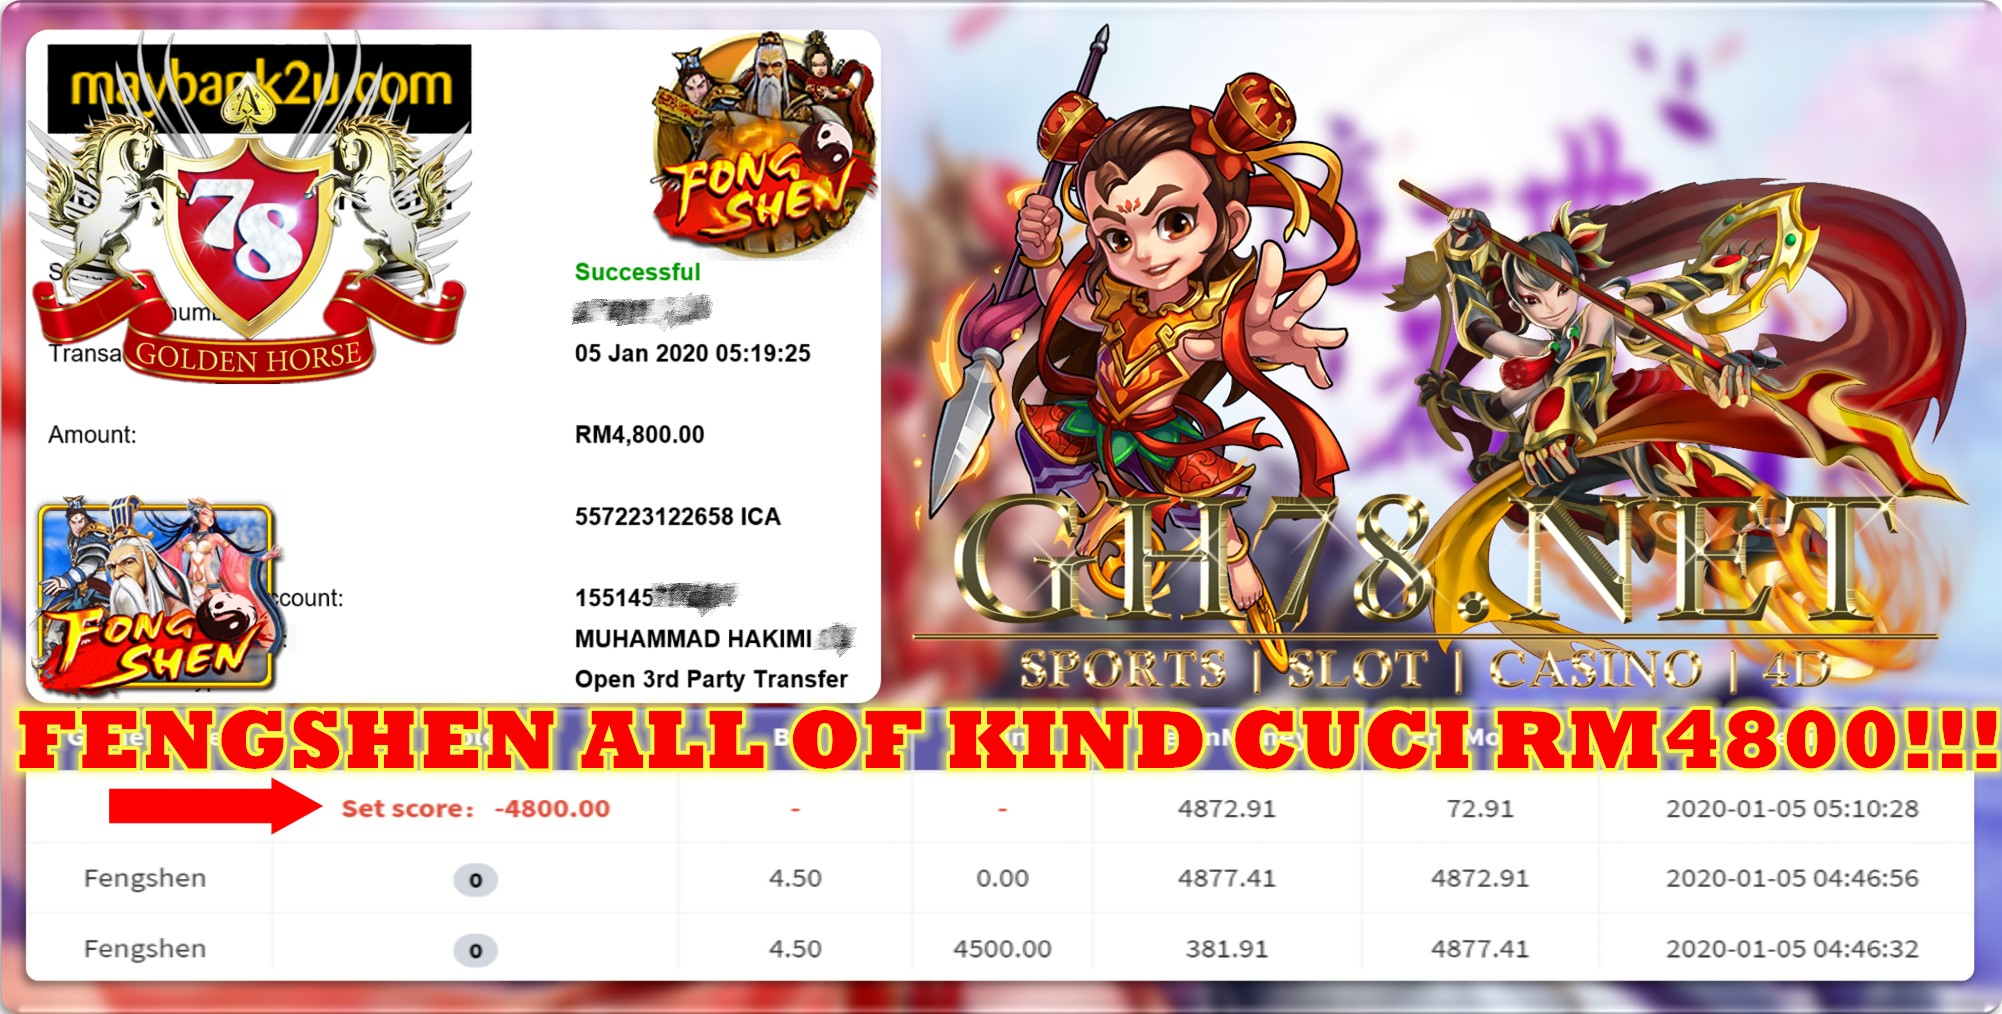 2020 NEW YEAR !!! MEMBER MAIN 918KISS FT.FENGSHEN WITHDRAW RM4800 !!!